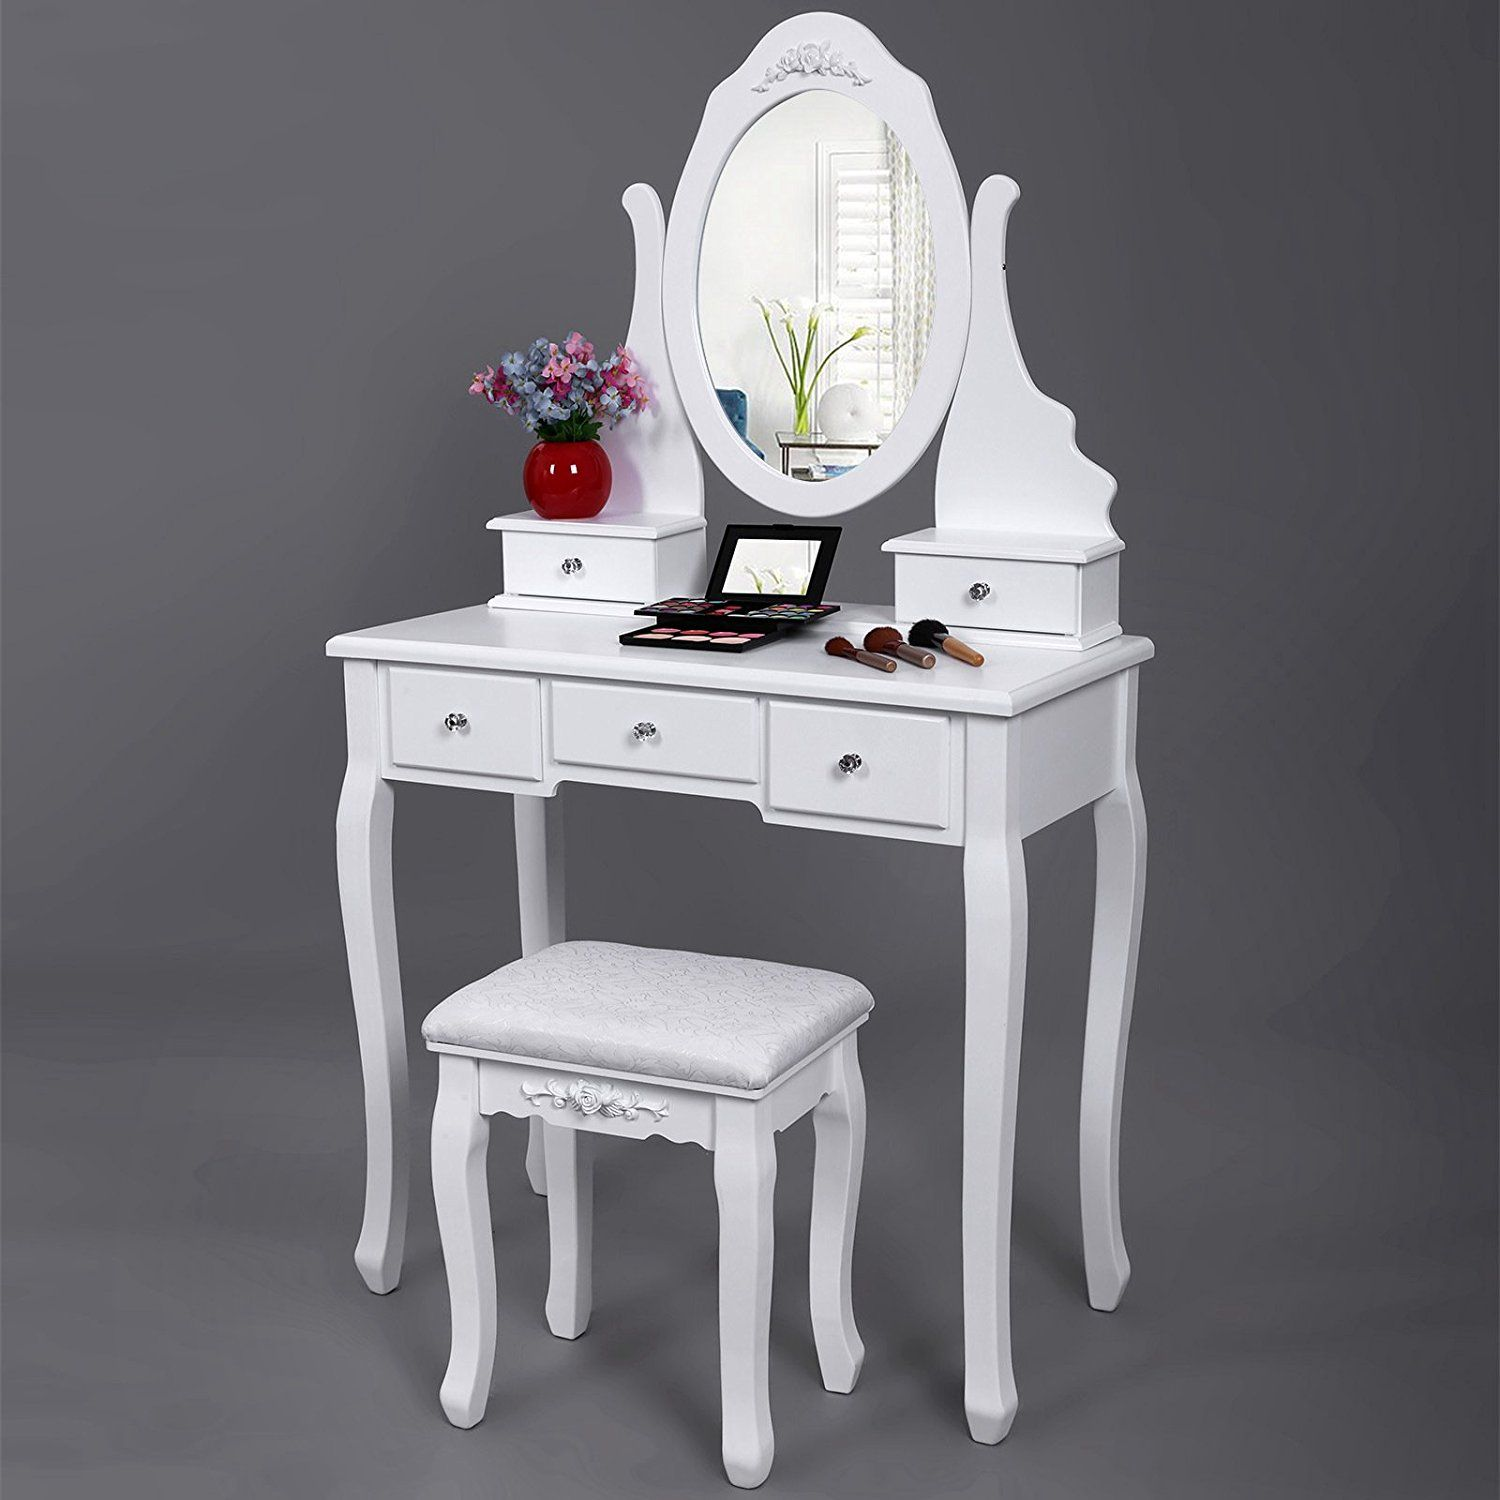 Dressing table with mirror songmics vanity set with mirror and stool makeup dressing table